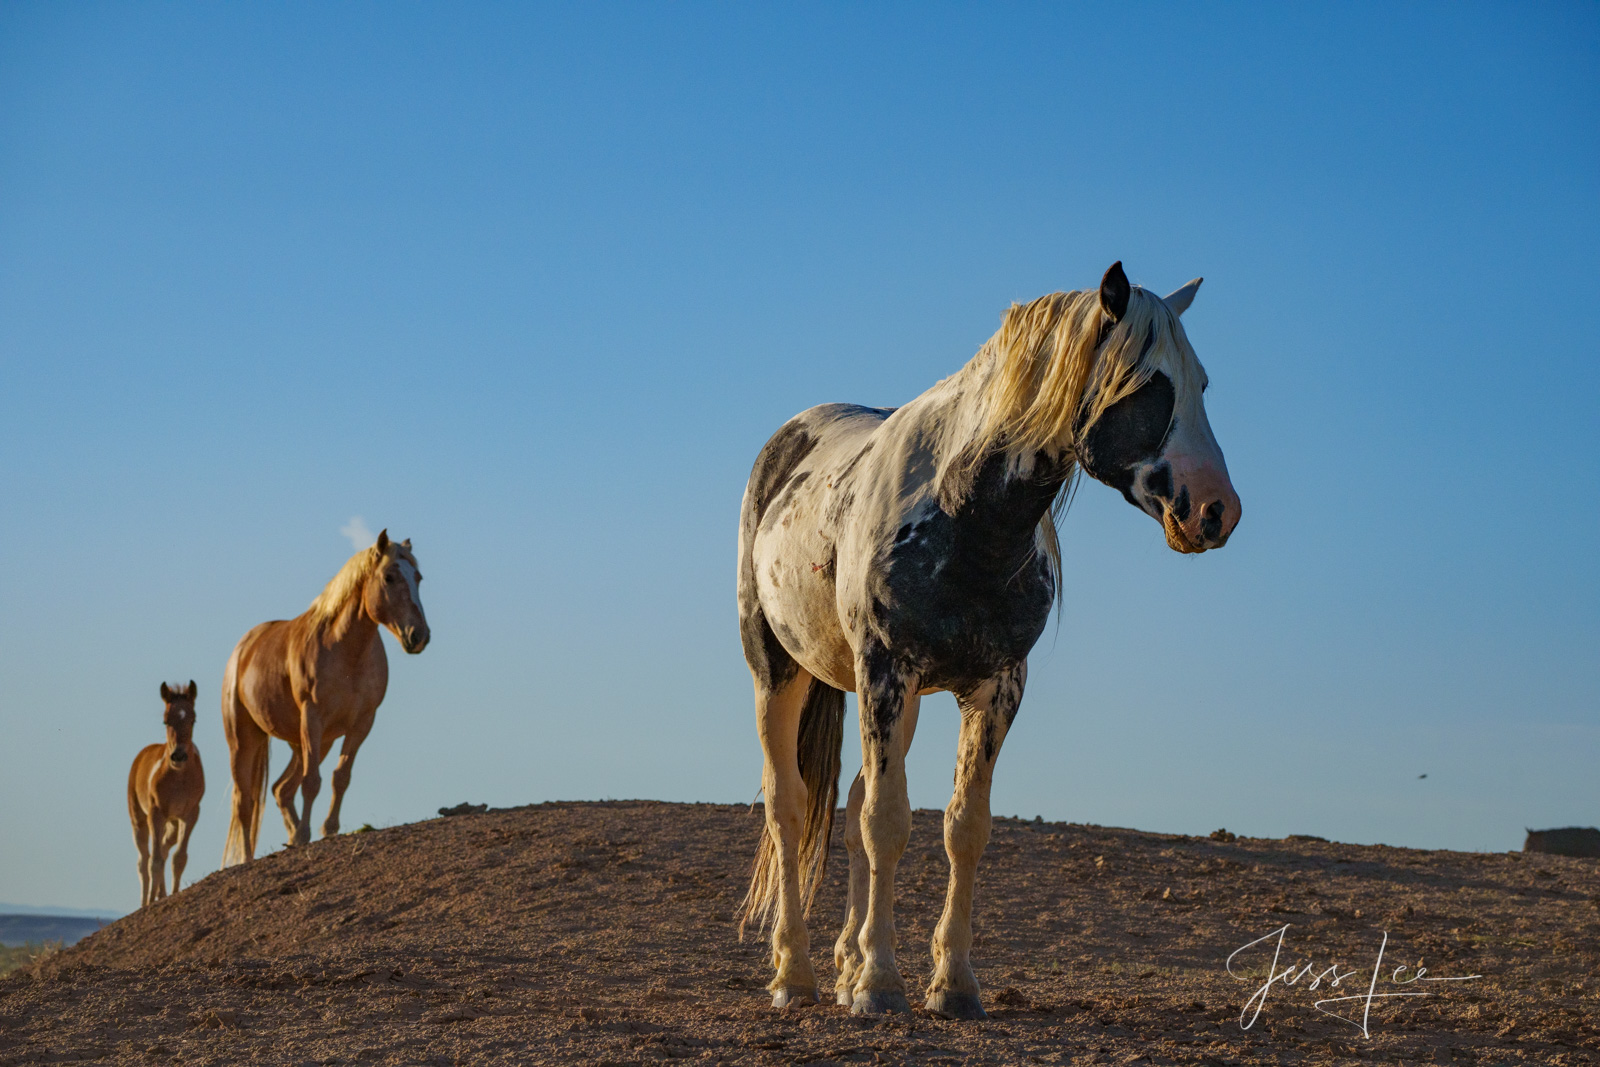 Fine Art Limited Edition Photography of Wild Herd of Mustang Horses. Wild Horses or Mustang herd. This is part of the luxurious...